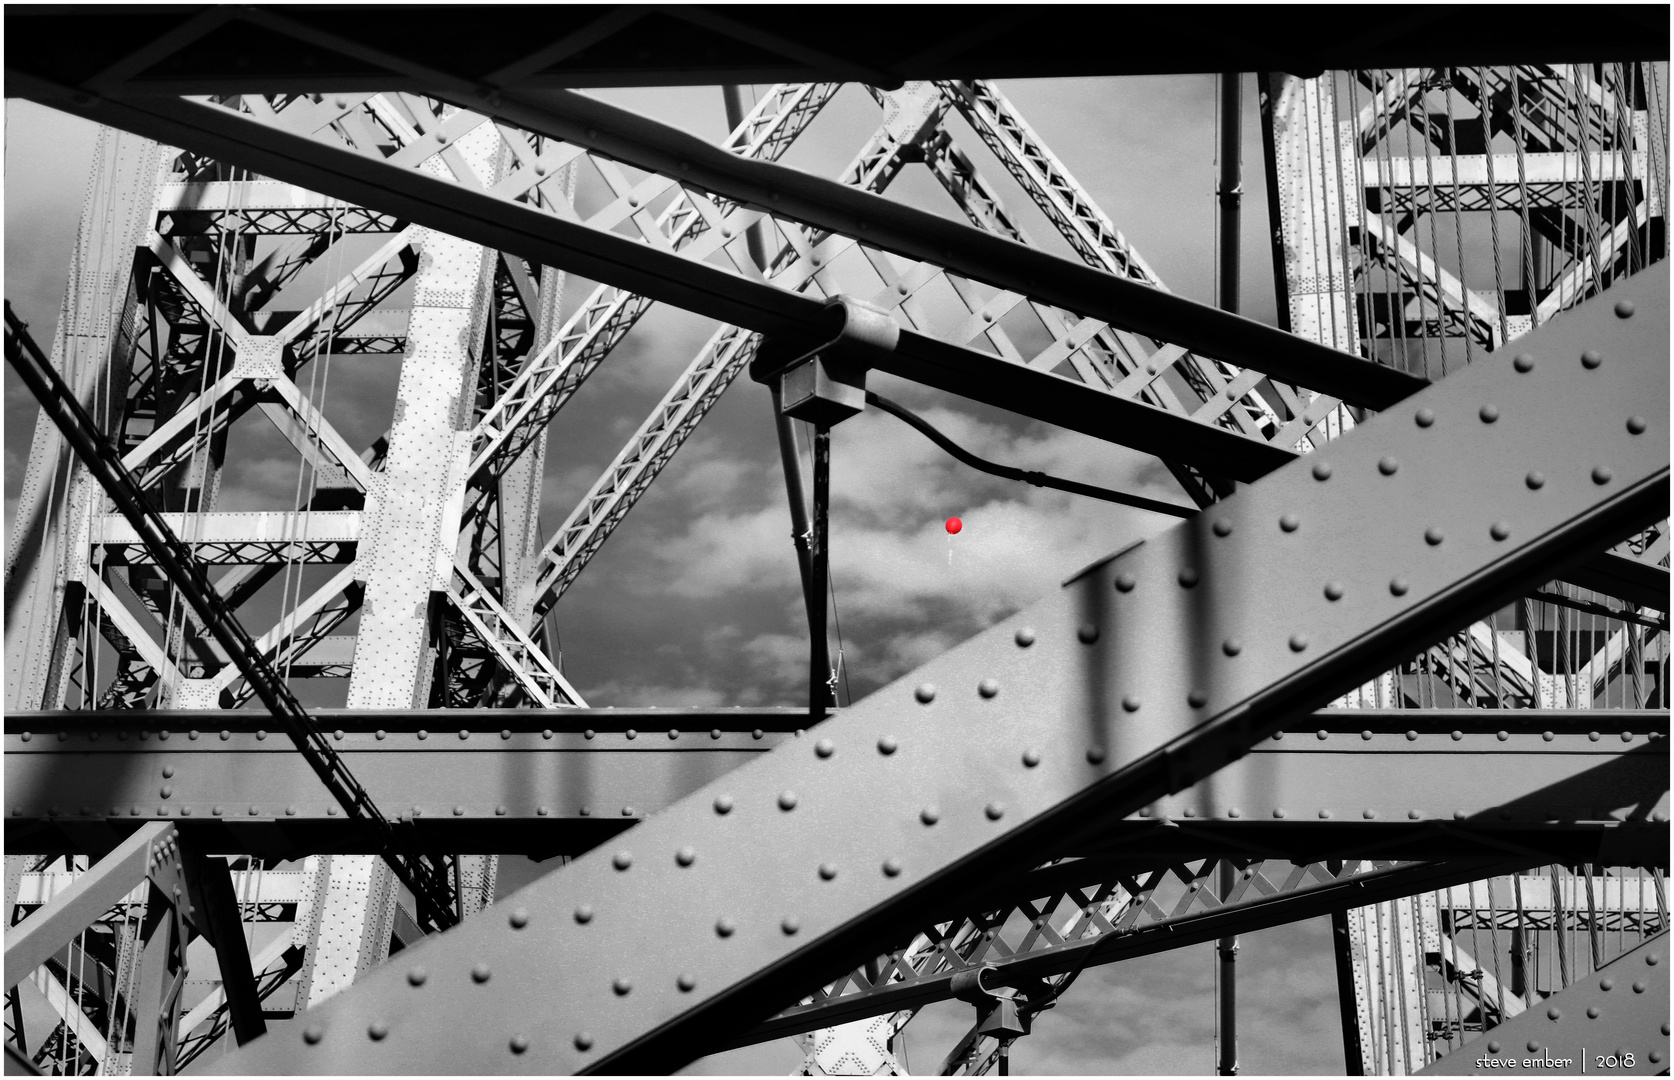 Bridge Girders and a Red Balloon - a New York Moment